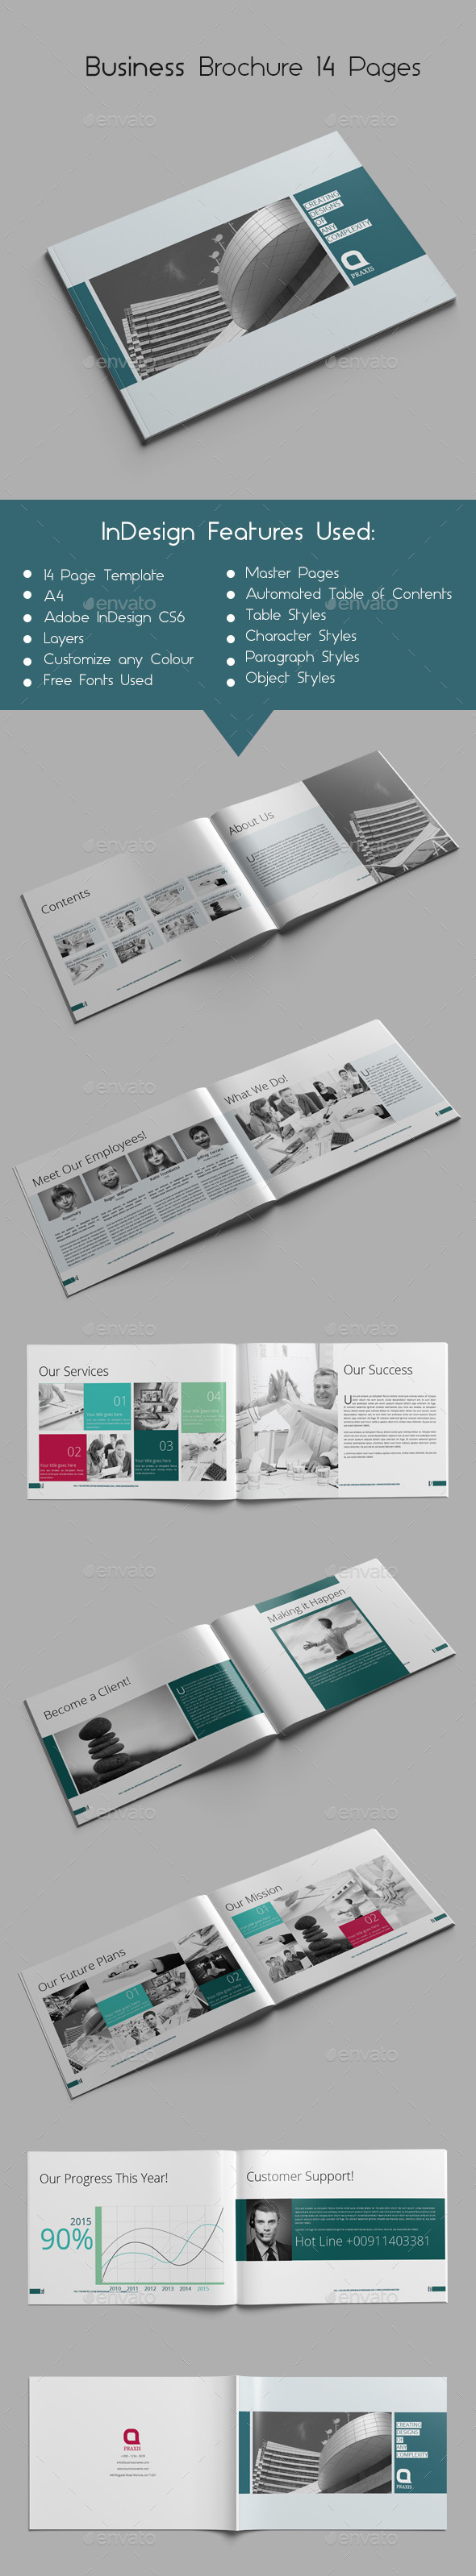 GraphicRiver Business Brochure 14 Pages 9725800